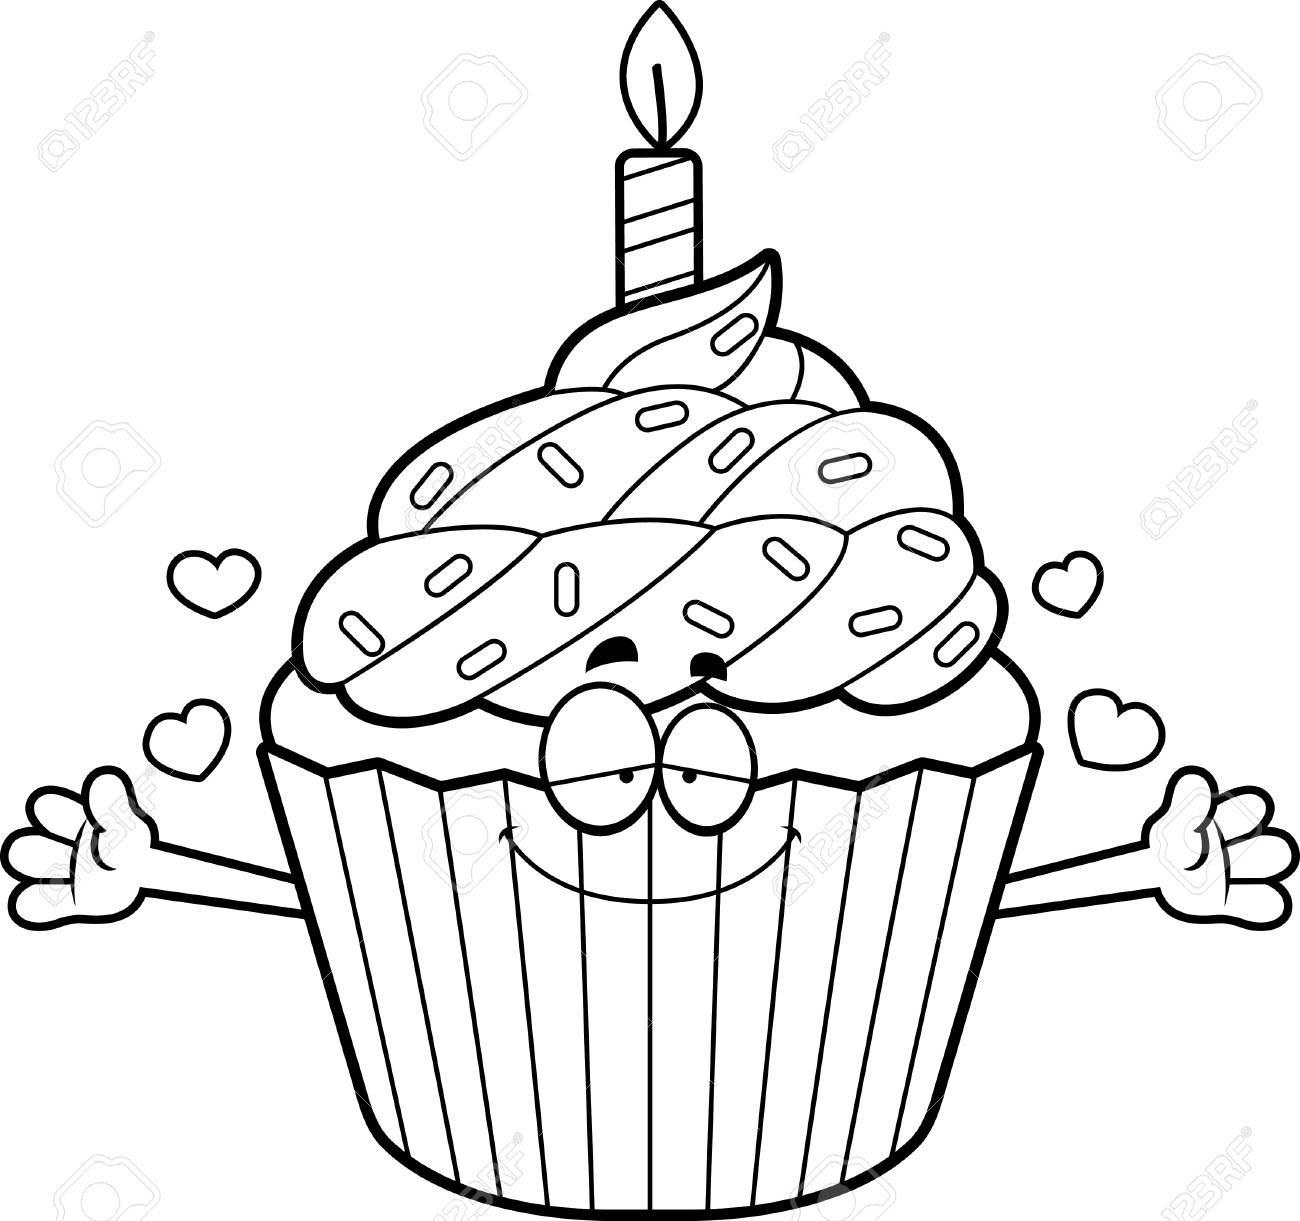 A Cartoon Illustration Of A Birthday Cupcake Ready To Give A